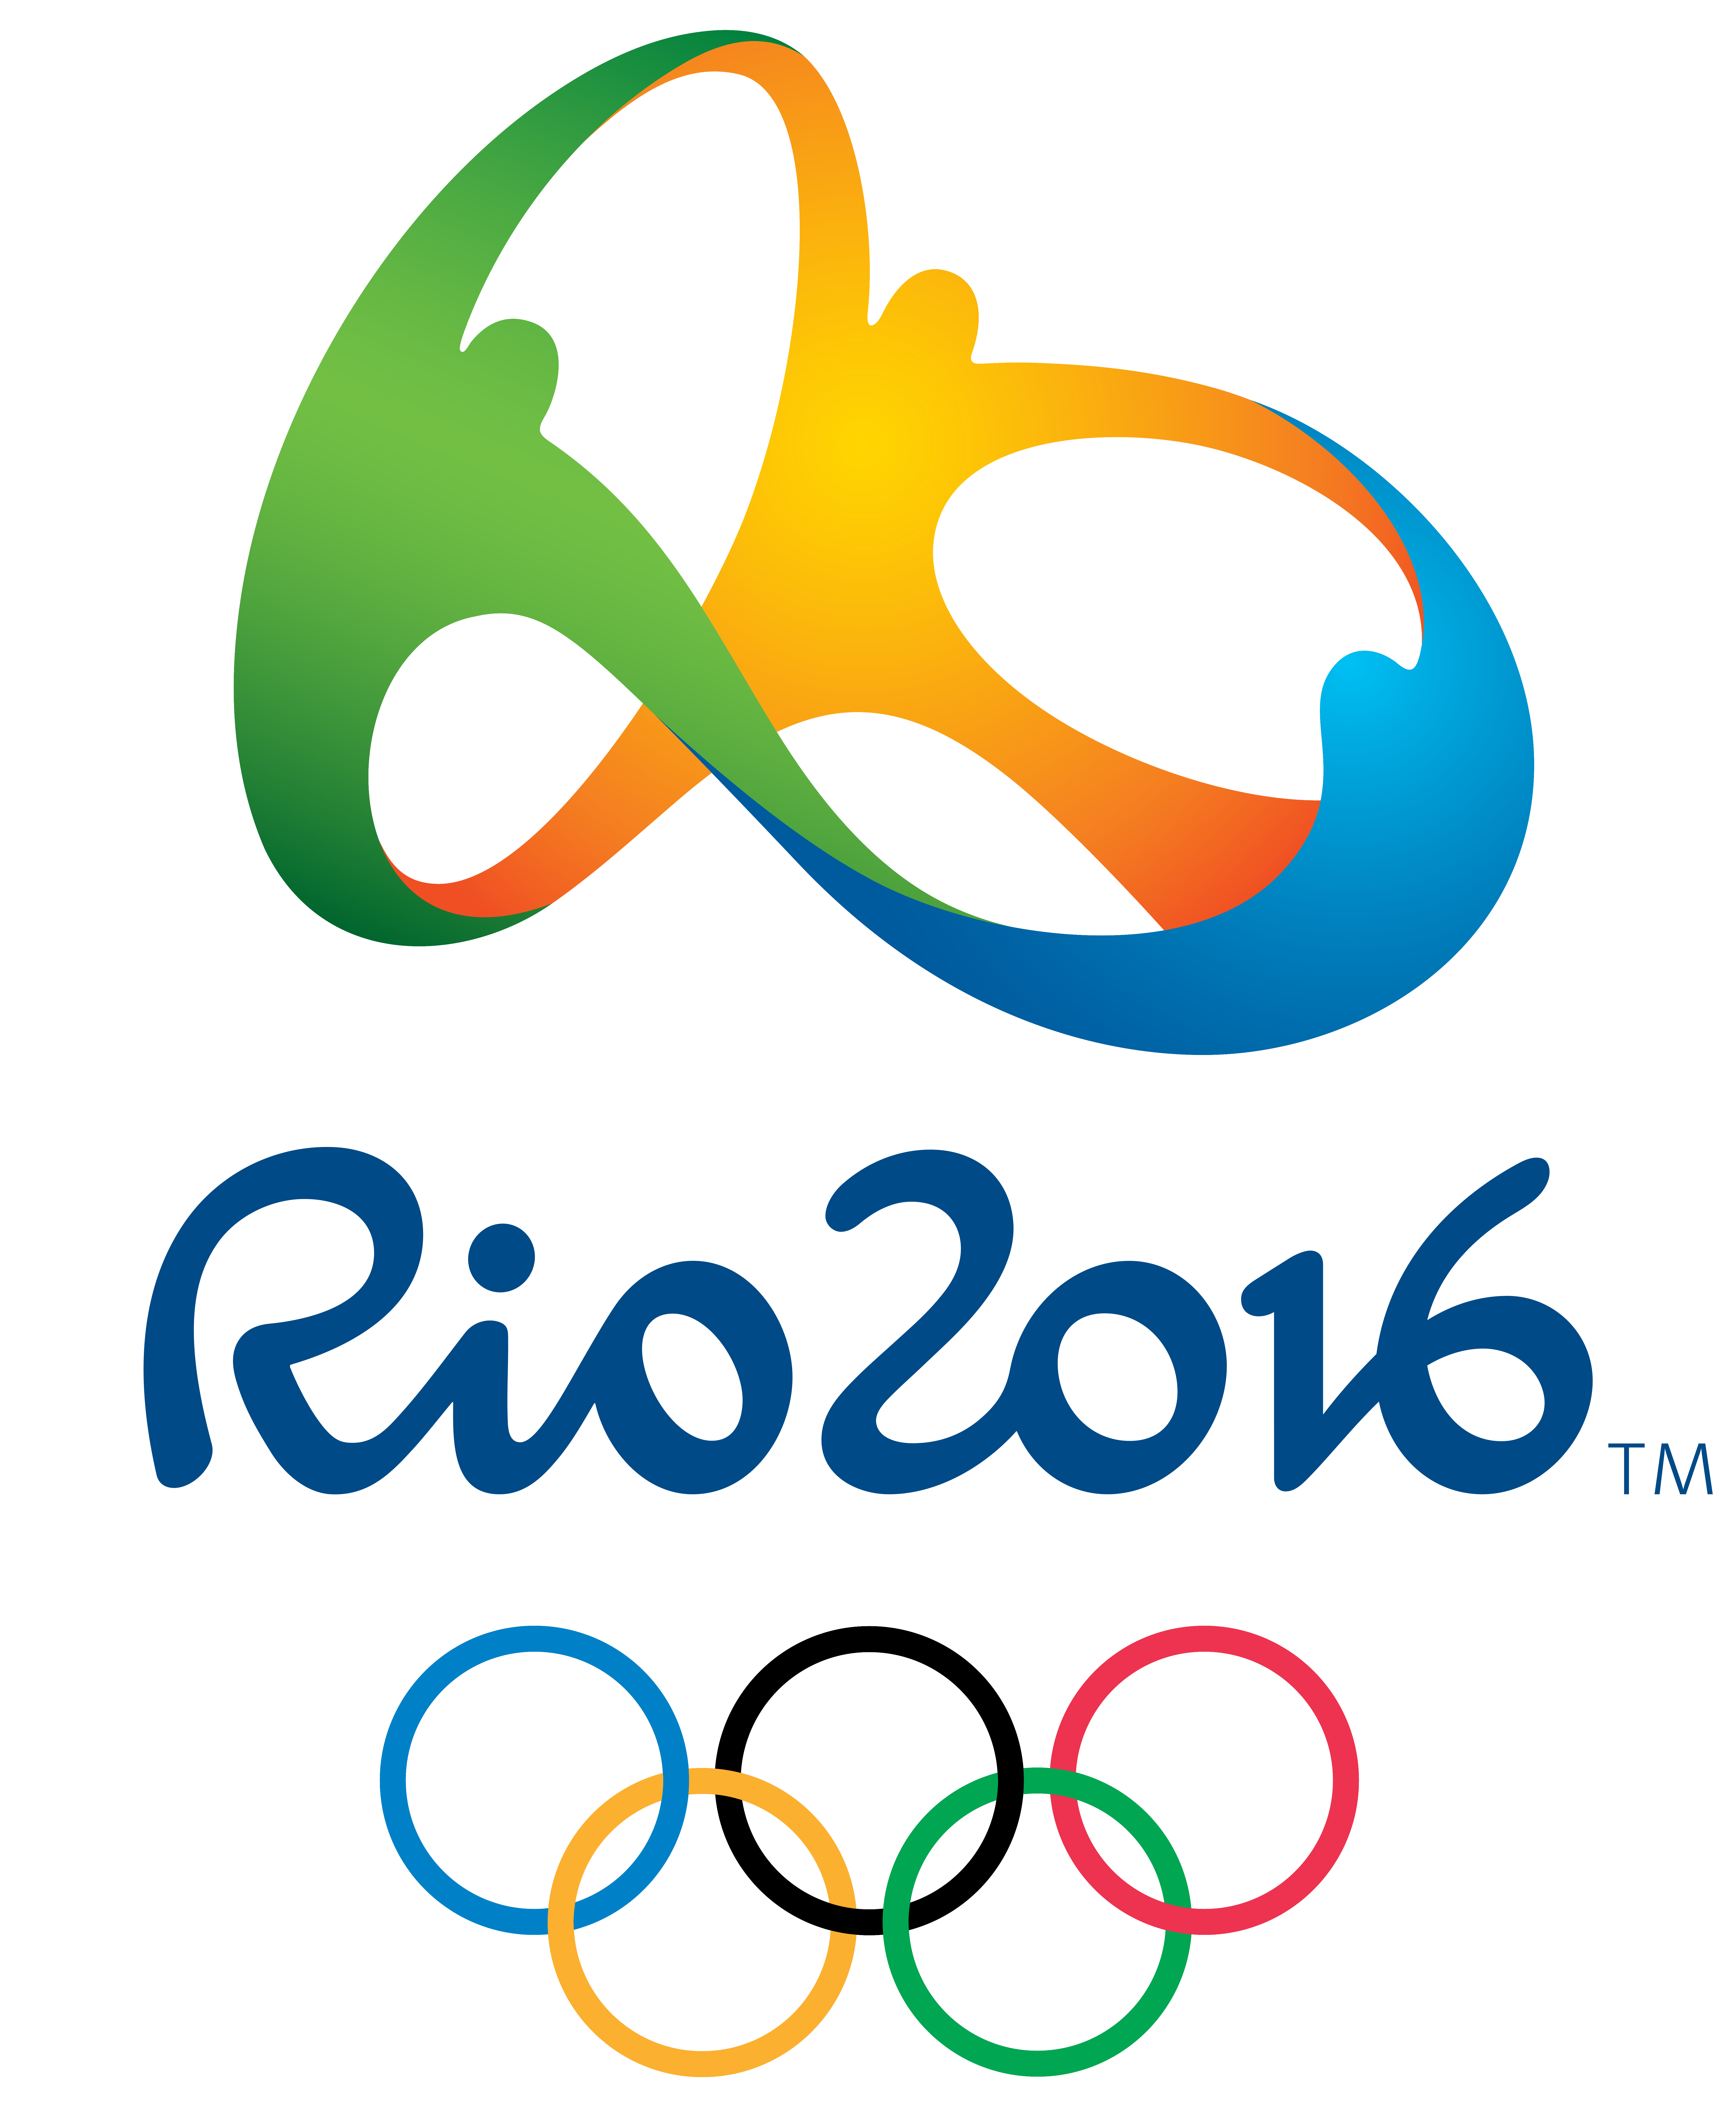 Rio 2016 logo png. Olympic games official transparent